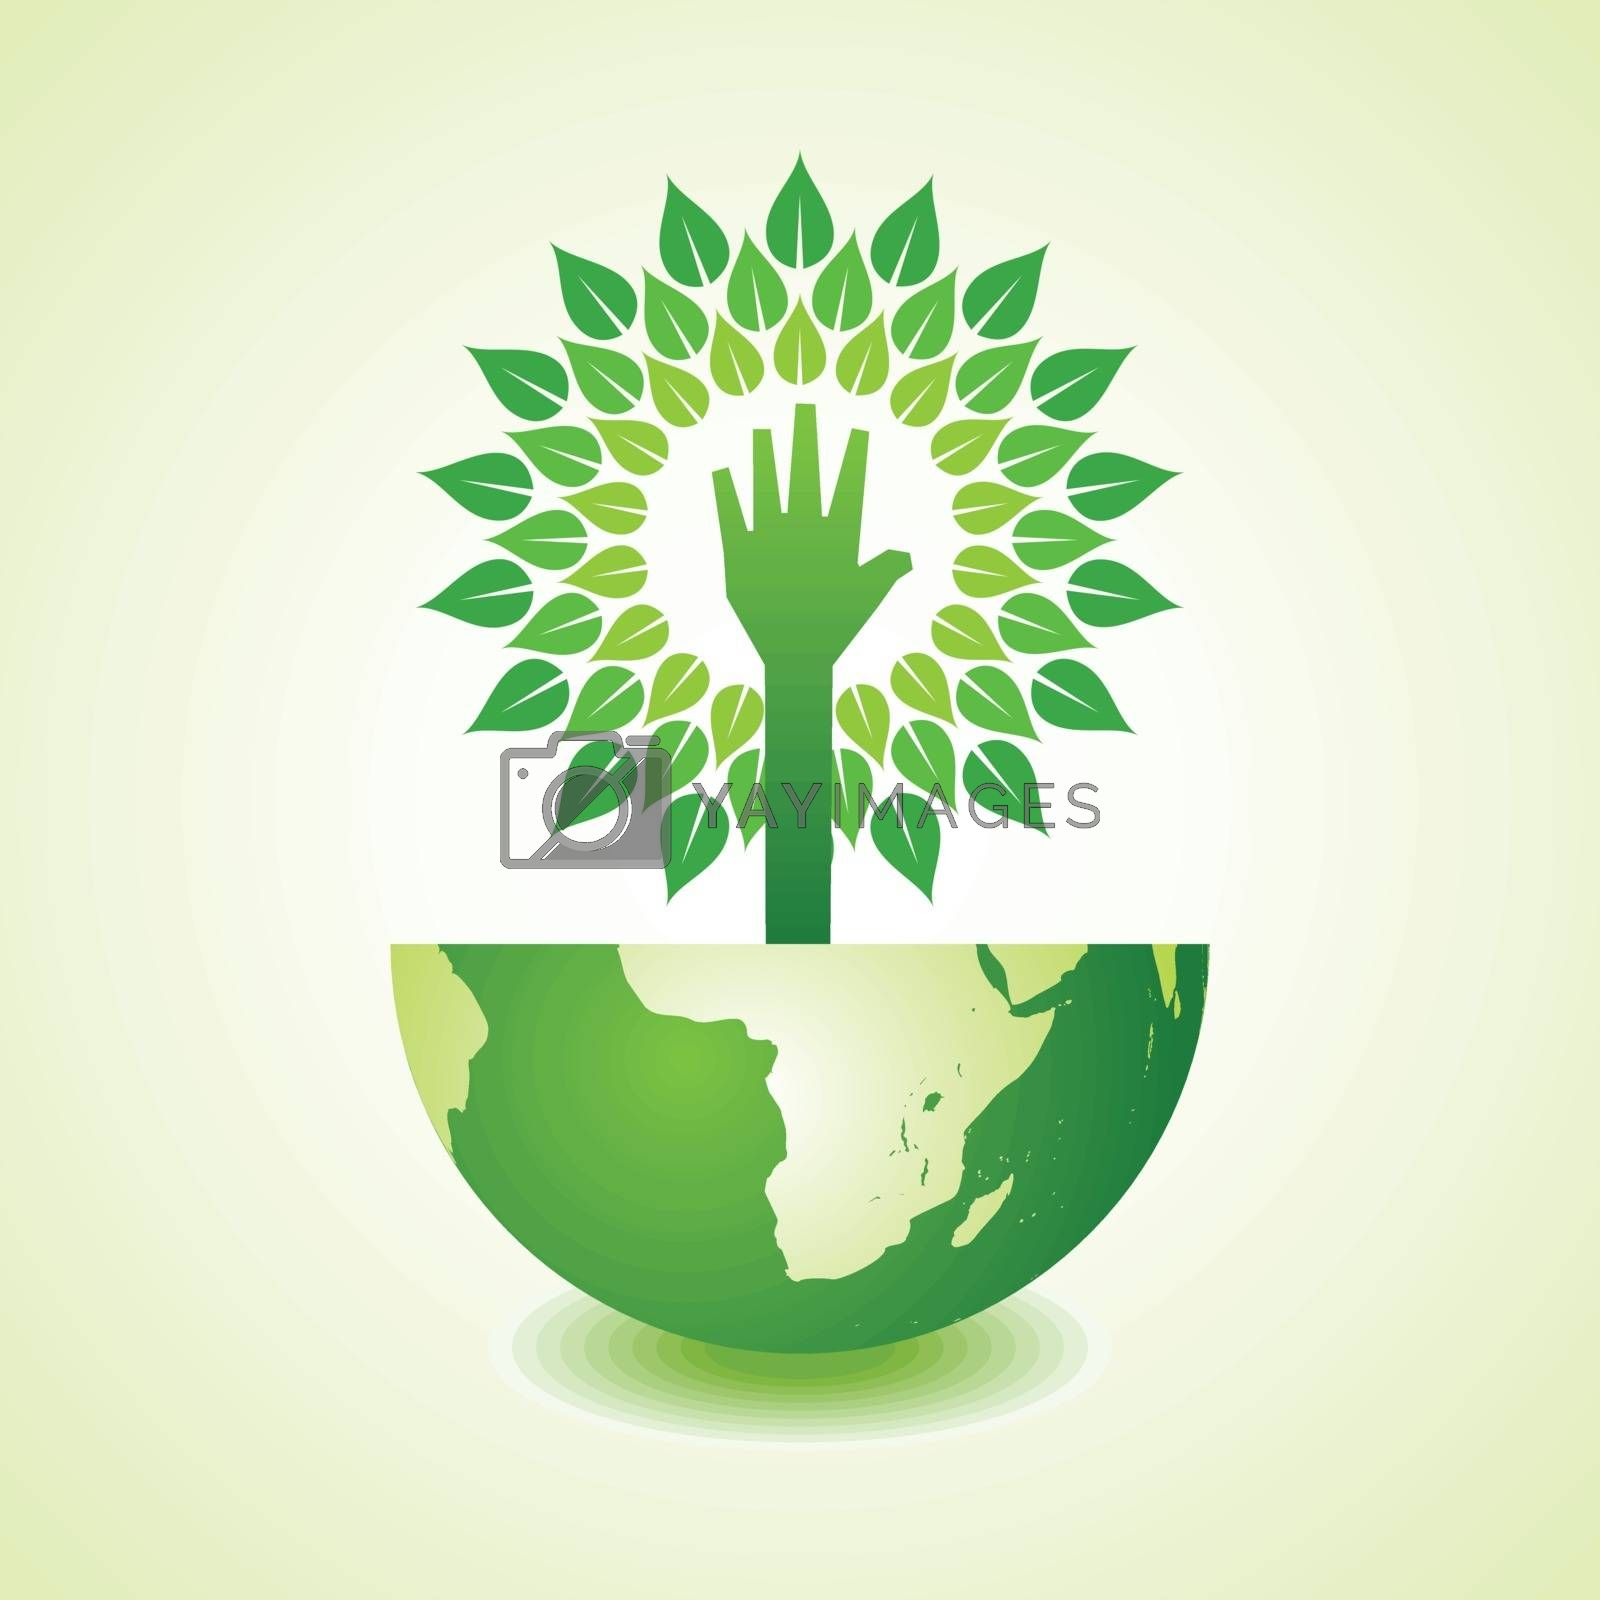 Helping hand make tree on earth - vector illustration